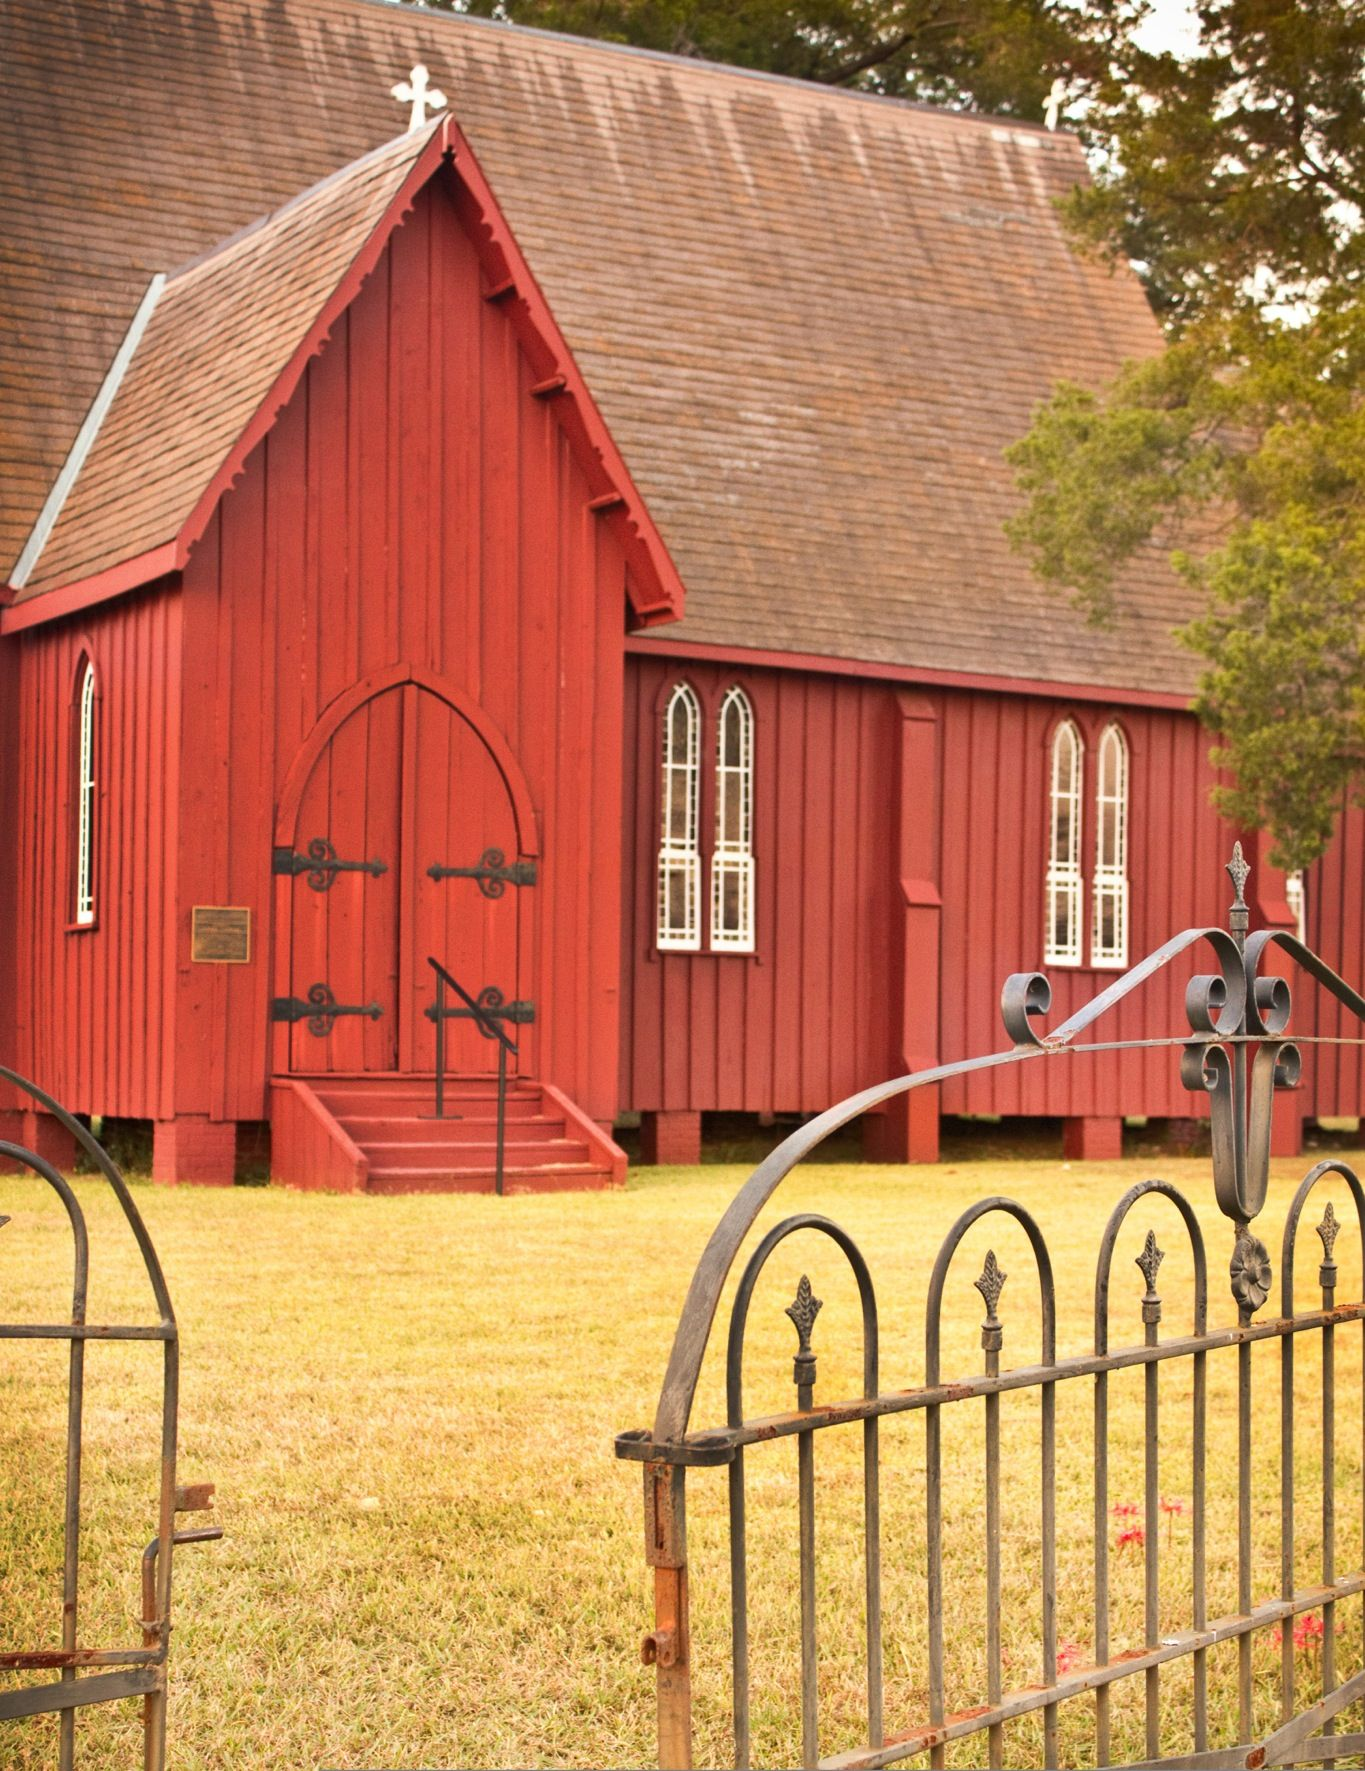 Board And Batten Siding Adds Charm To This Barn Red Rural Gothic Church